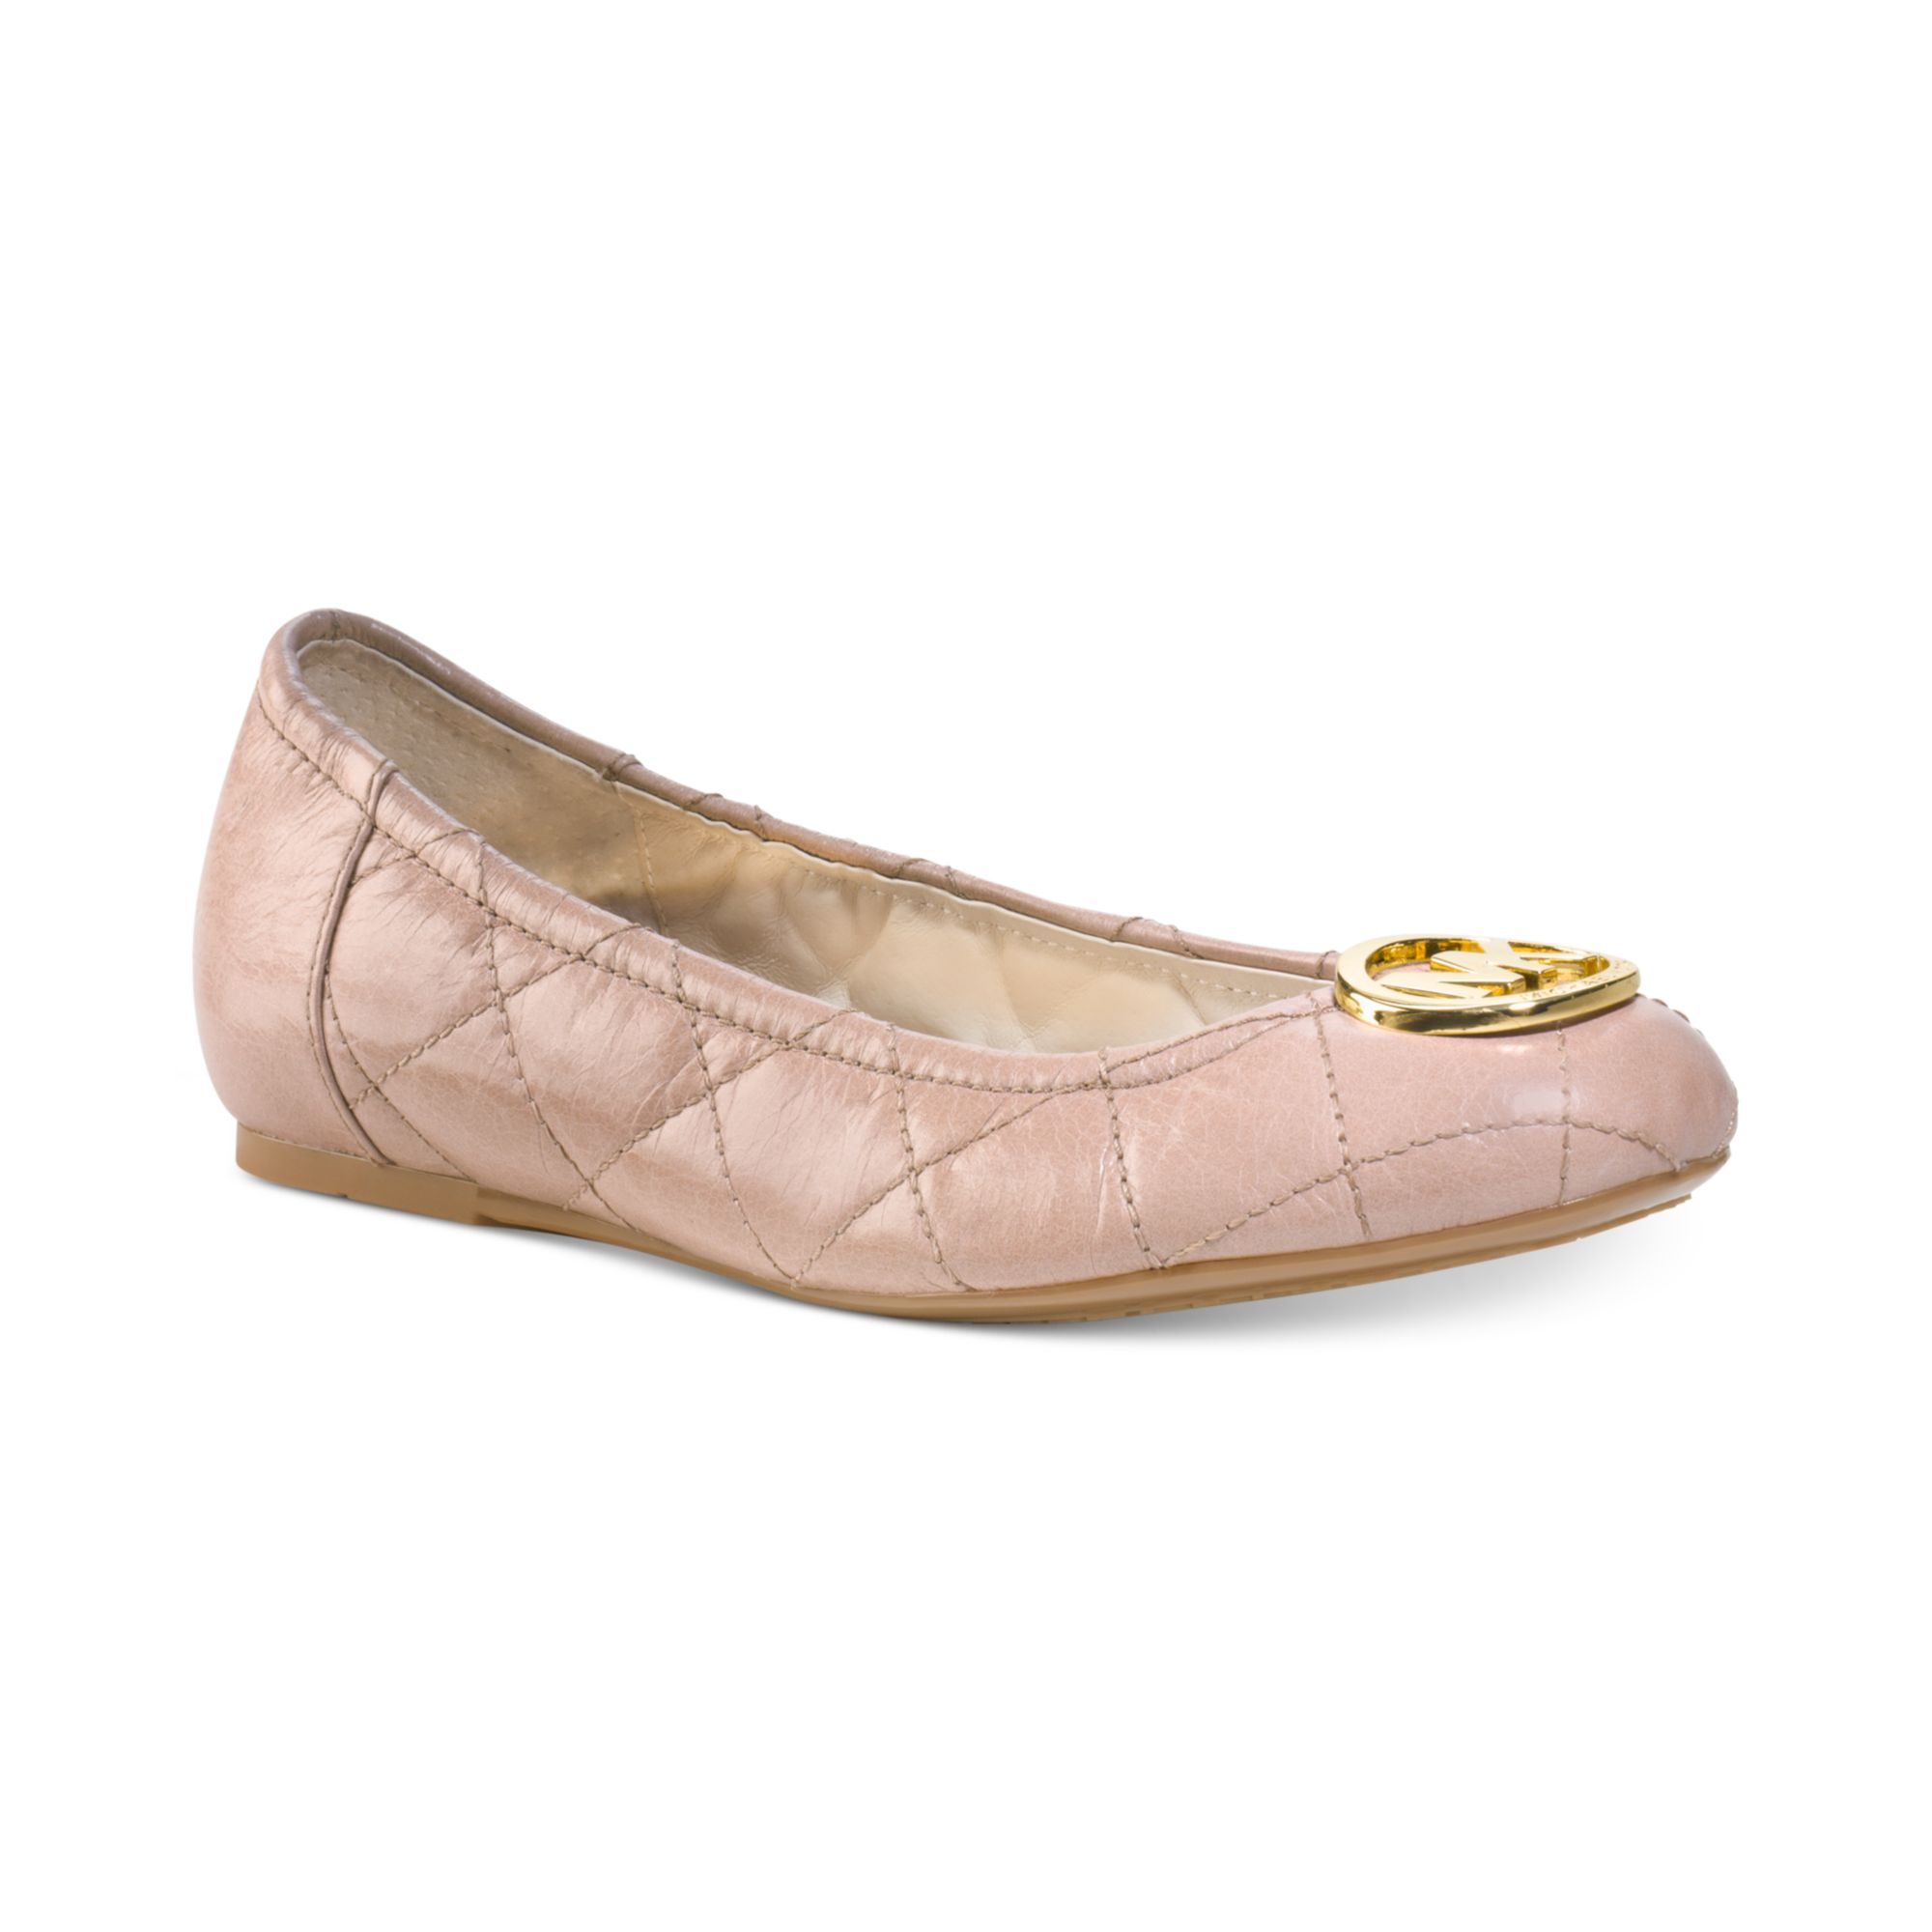 38b000c2e2f1 Michael Kors Fulton Quilted Leather Ballet Flats - Best Quilt ...